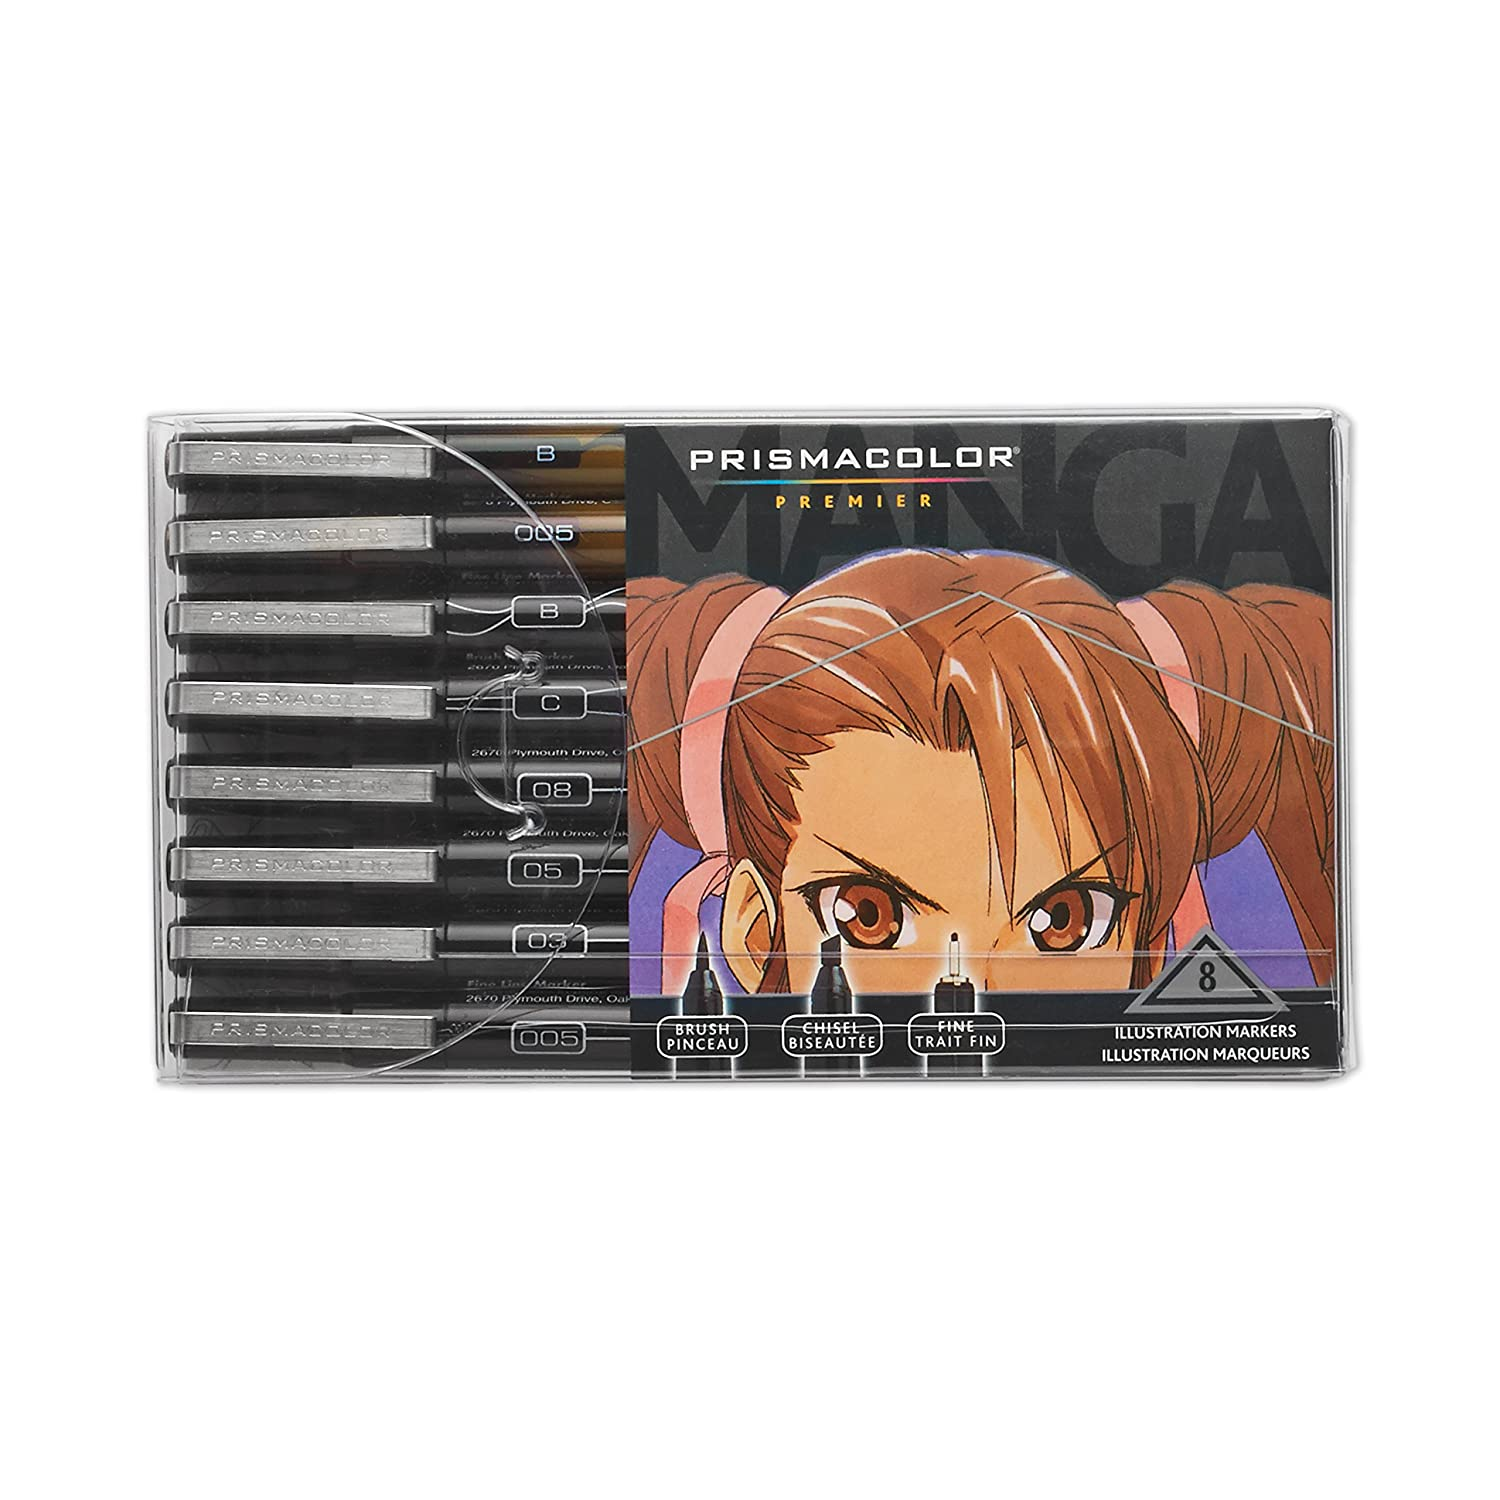 Sanford Prismacolor Premier Manga Illustration Marker Set, 8 Colored Art Markers (1759417)